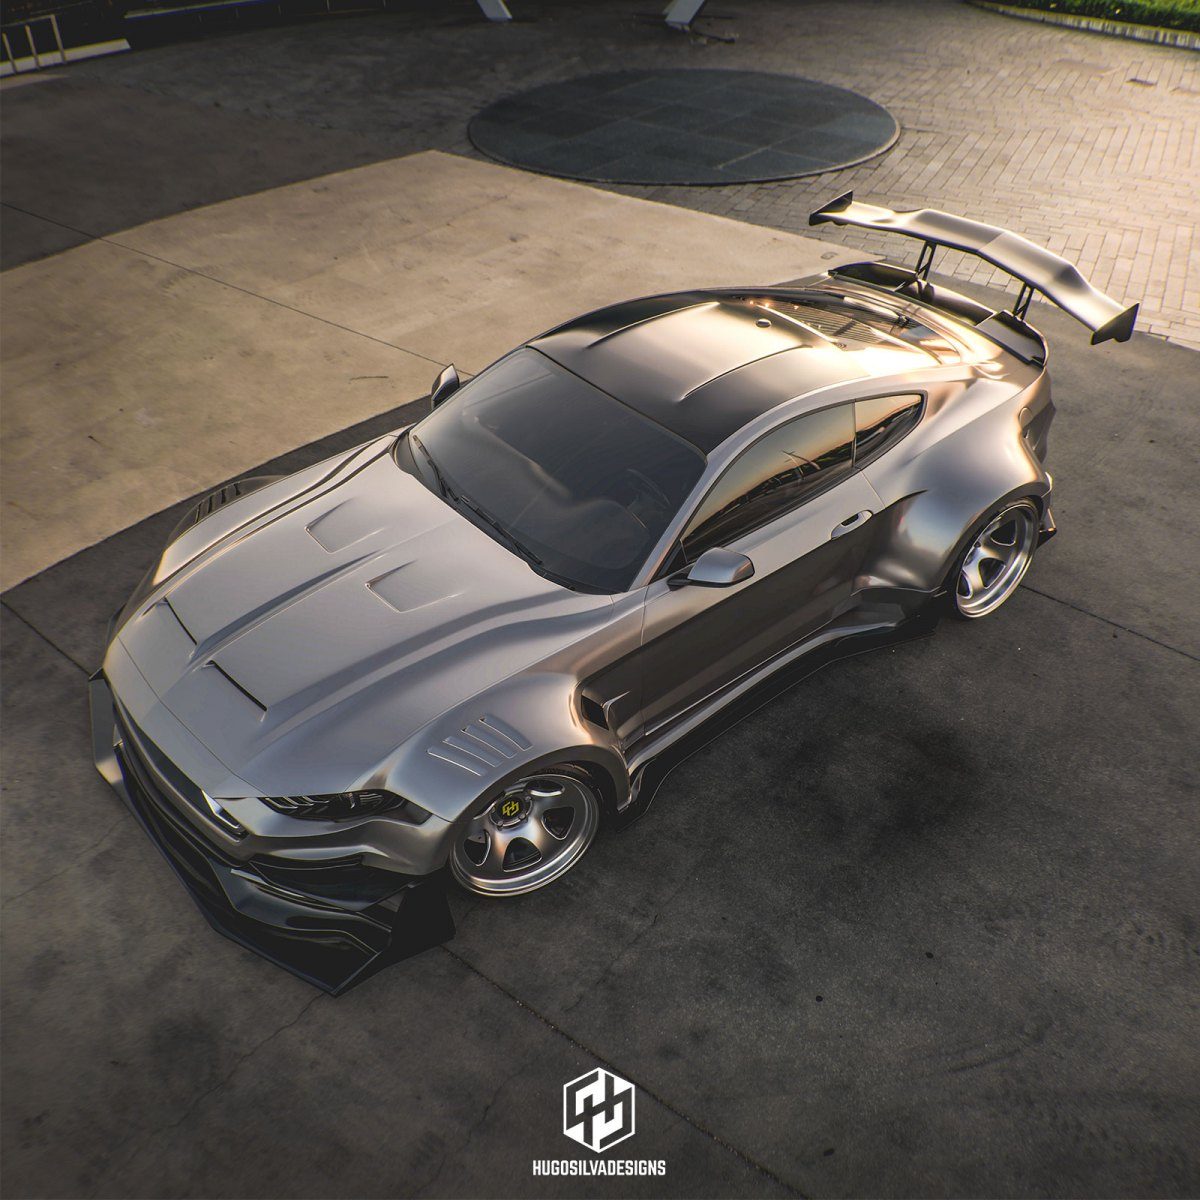 Ford Mustang Shelby Super Snake 2020 - Rendering